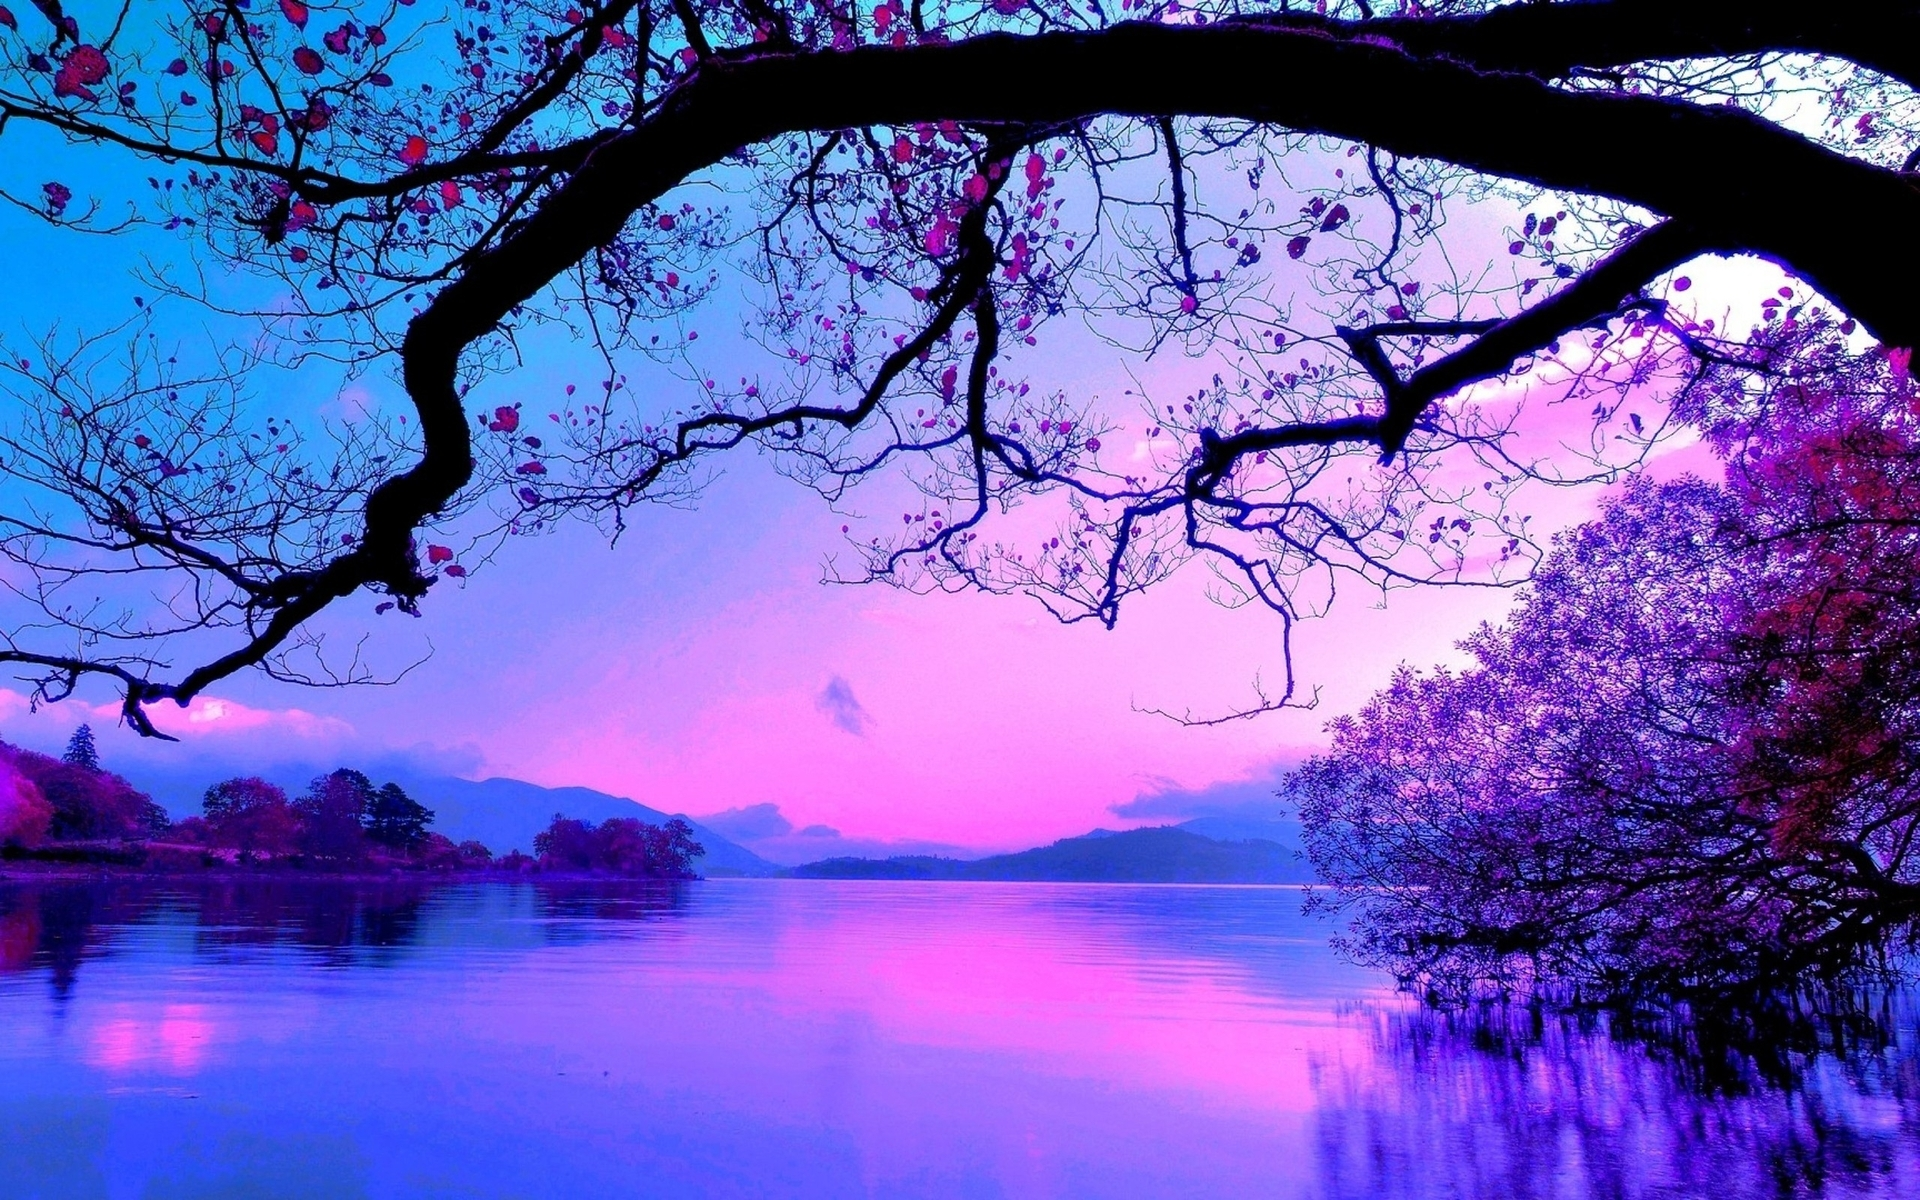 purple sunset 8782 1920x1200 wallpaper 1920x1200